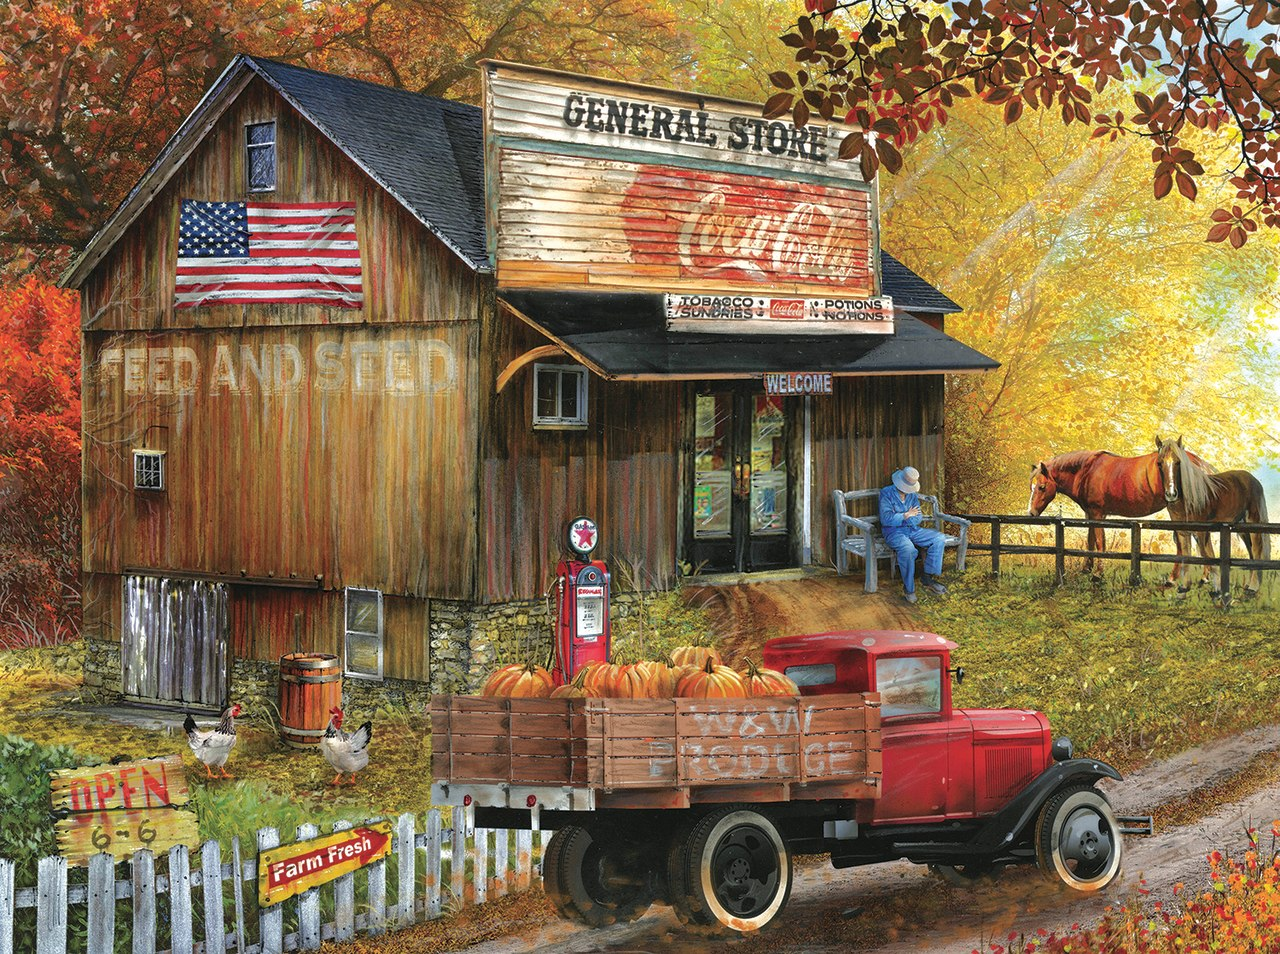 Seed and Feed  General Store - 1000pc Jigsaw Puzzle By Sunsout  			  					NEW